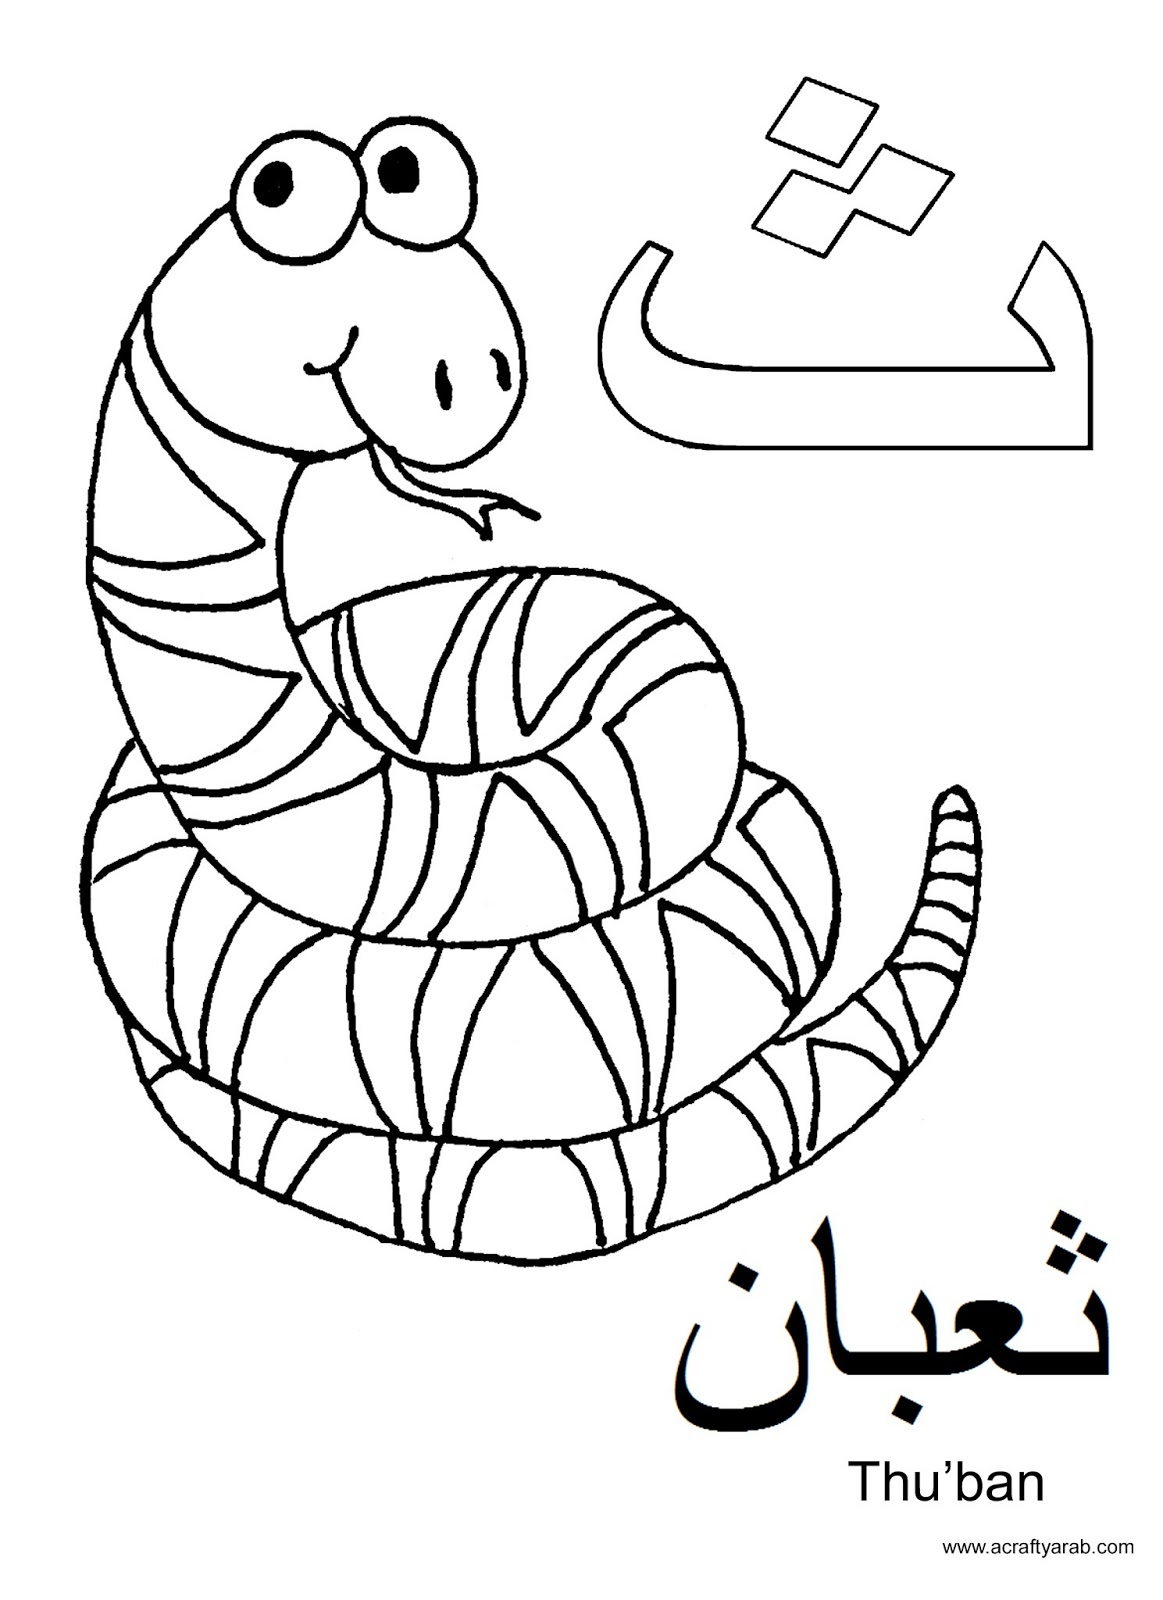 A Crafty Arab Arabic Alphabet Coloring Pages Tha Is For